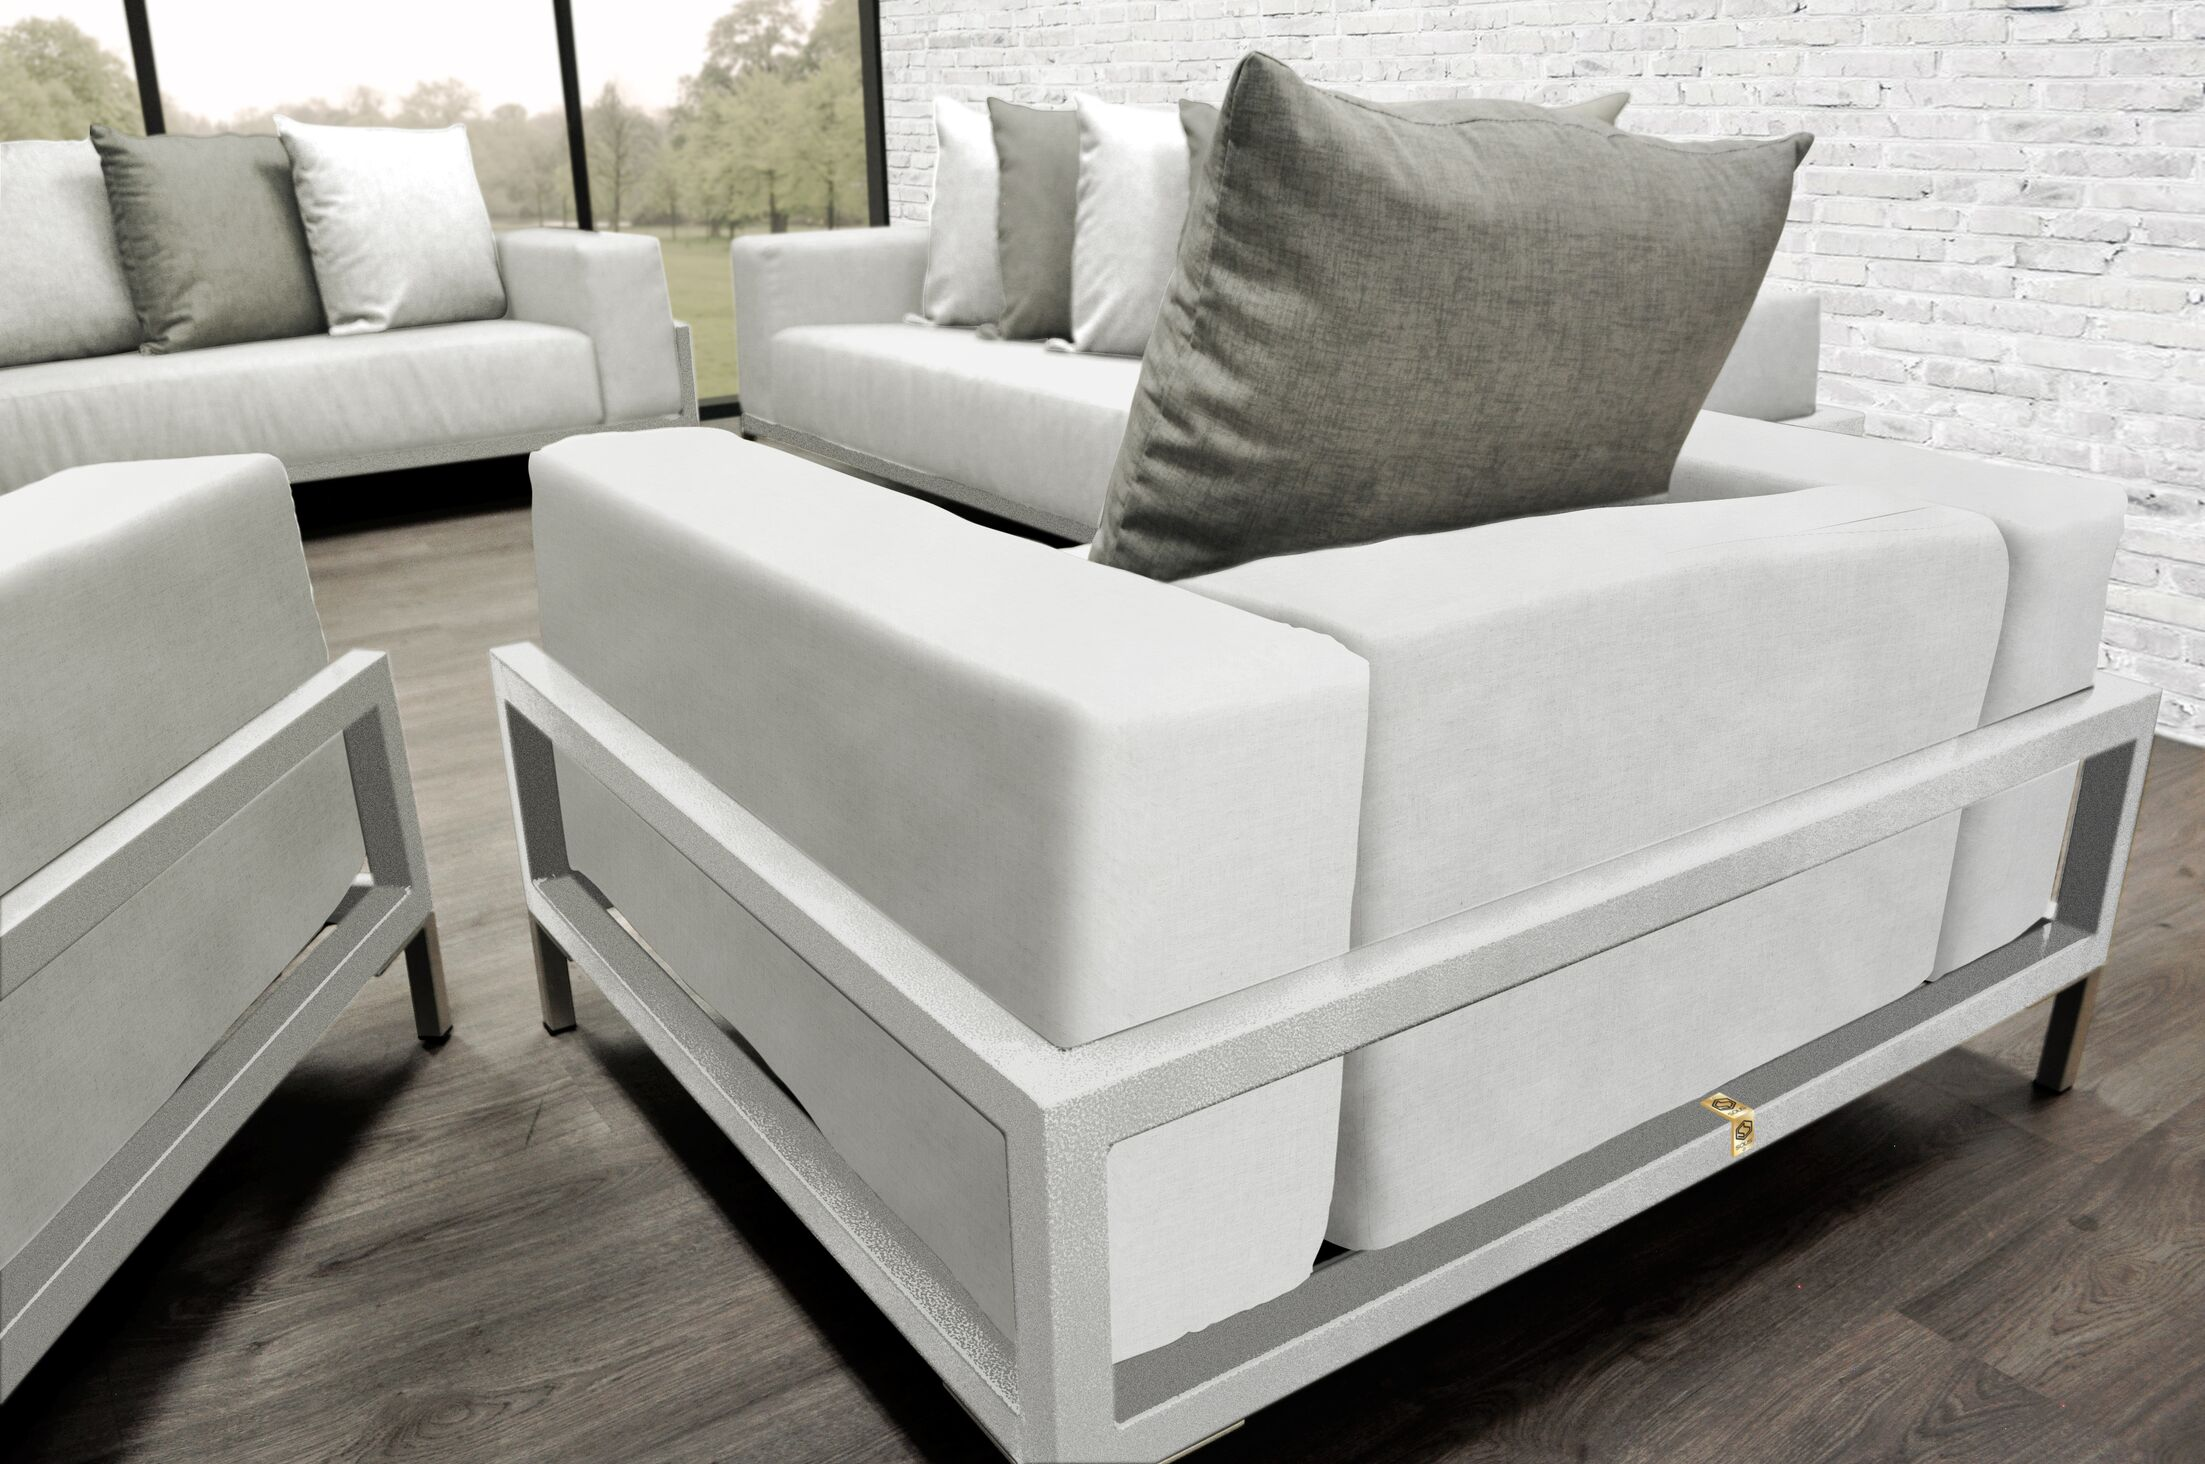 Tilly Modern 4 Piece Sofa Set with Cushions Accent Pillow Fabric: Oyster/White